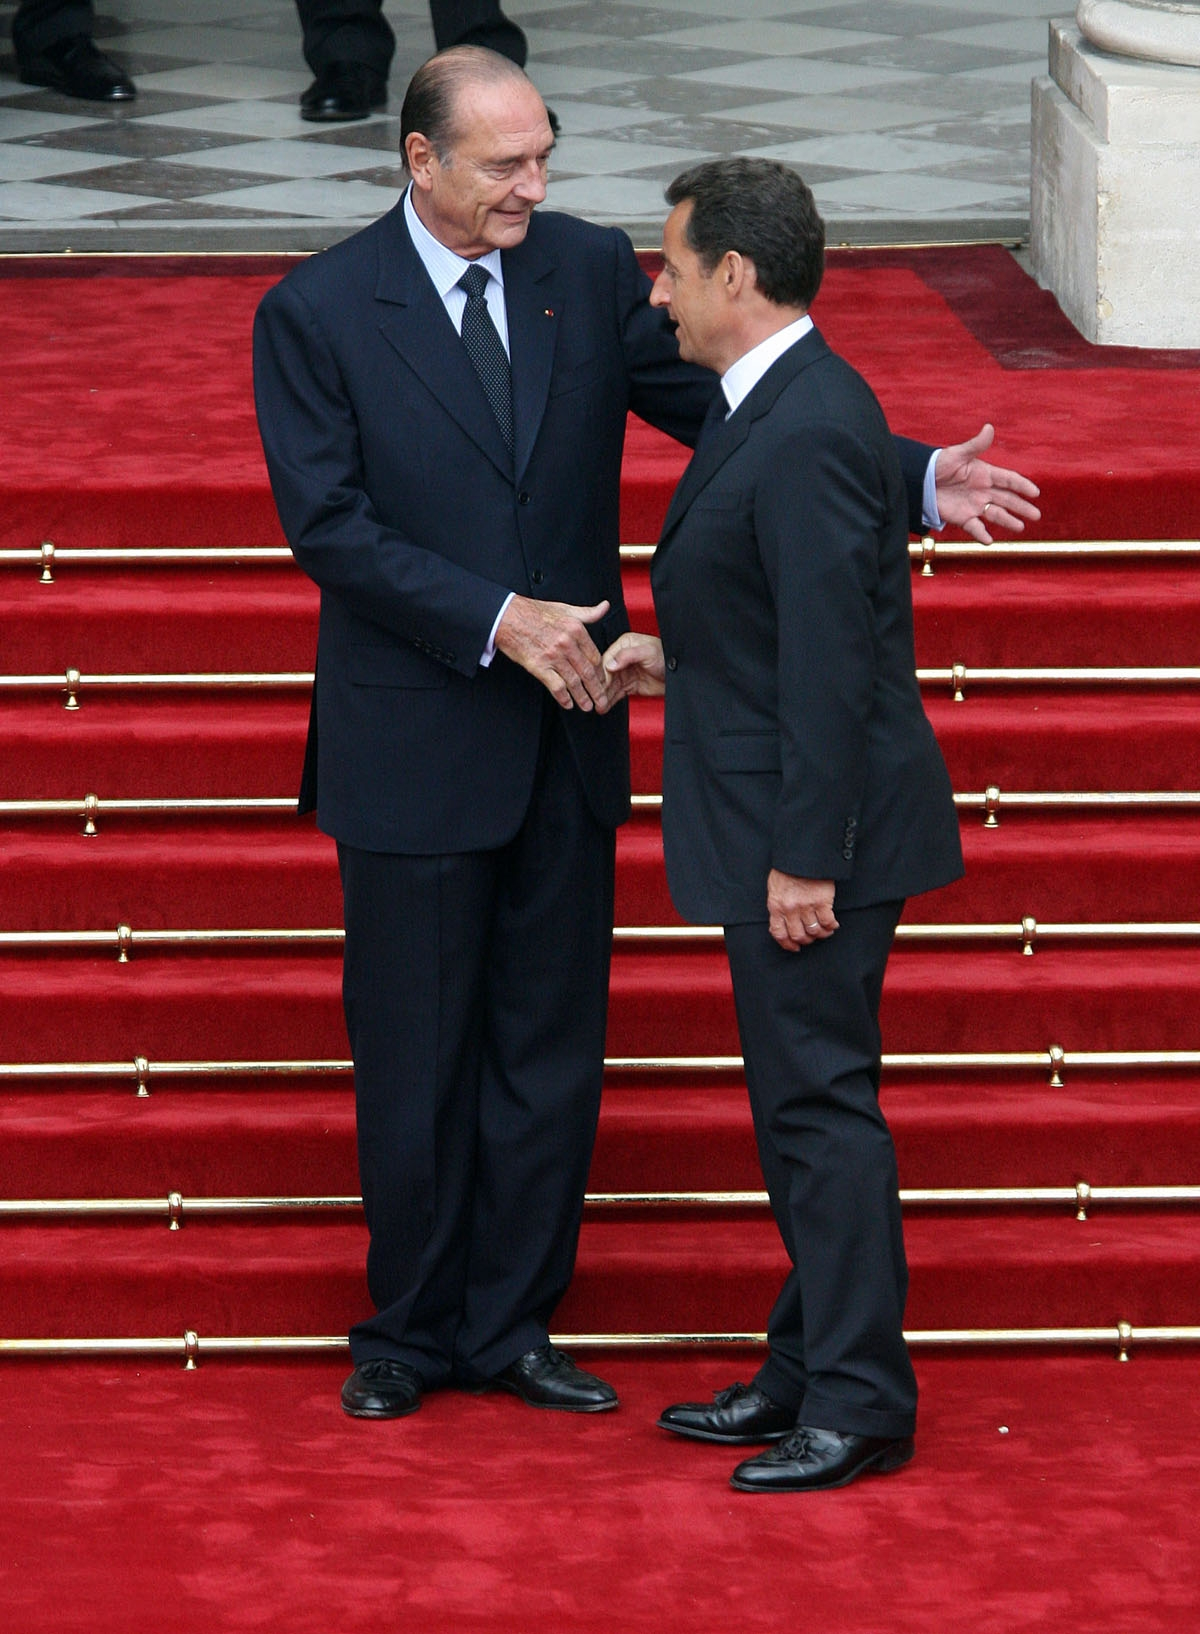 French president Jacques Chirac (L) welcomes his  successor Nicolas Sarkozy upon his arrival at the Elysee Palace for the formal handover of power ceremony, 16 May 2007 in Paris.